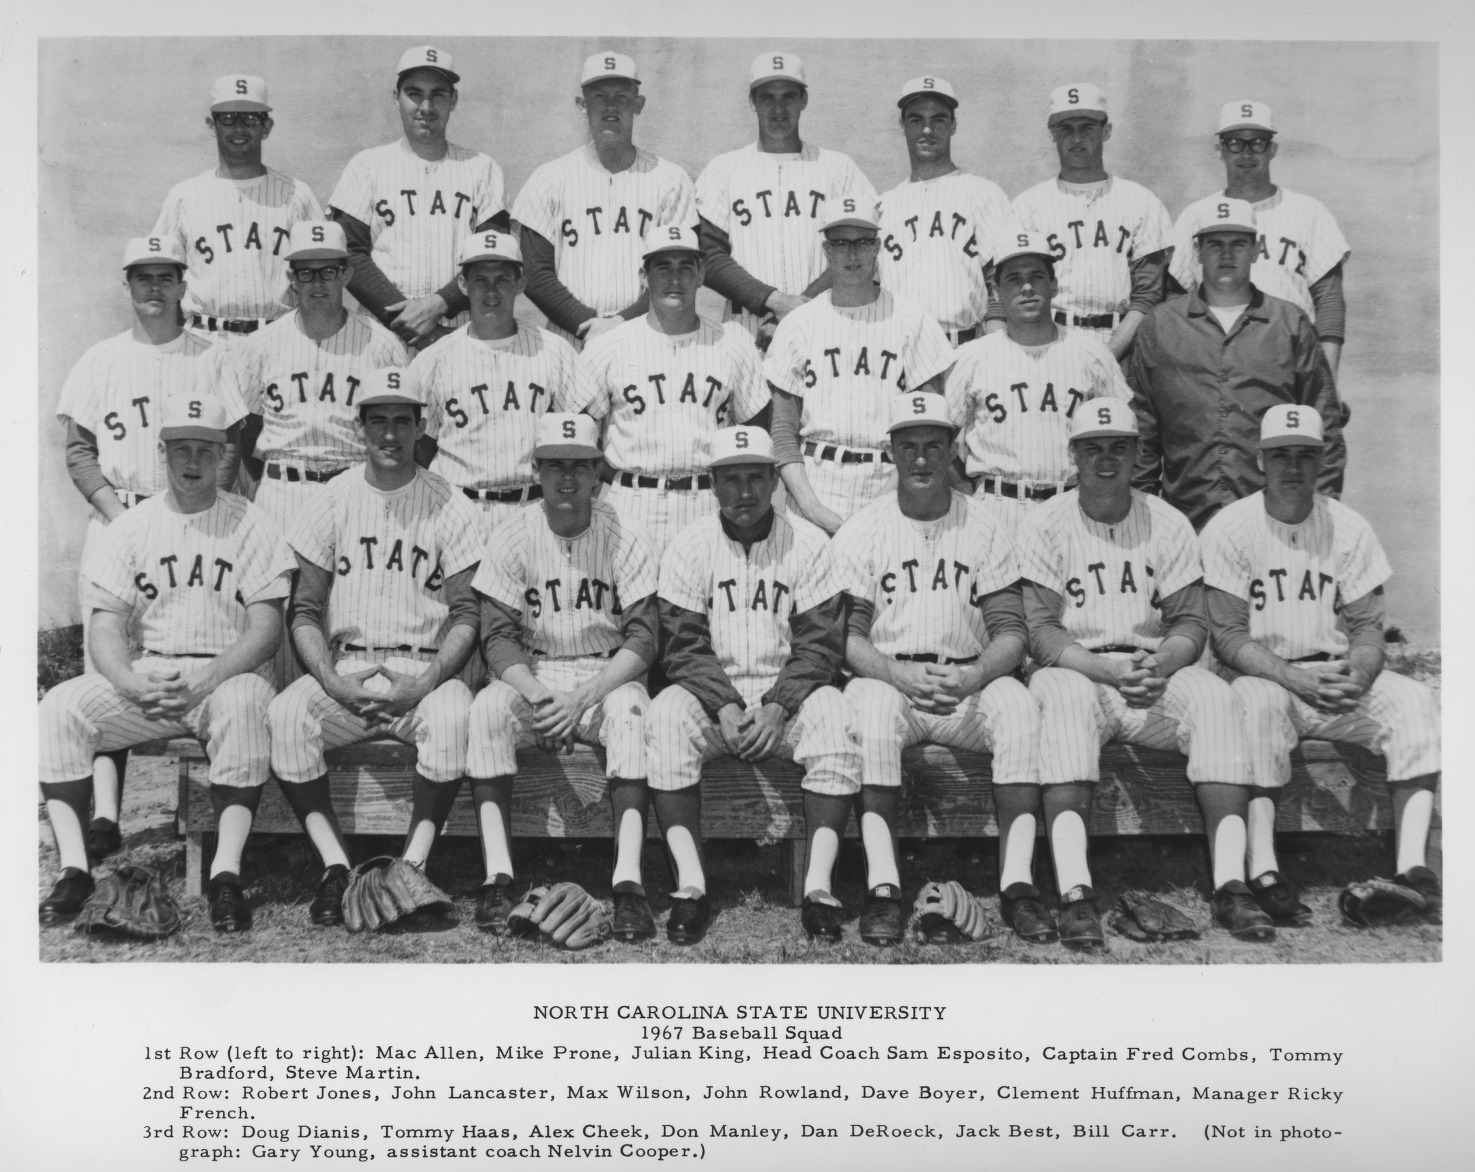 North Carolina State College baseball team, 1967